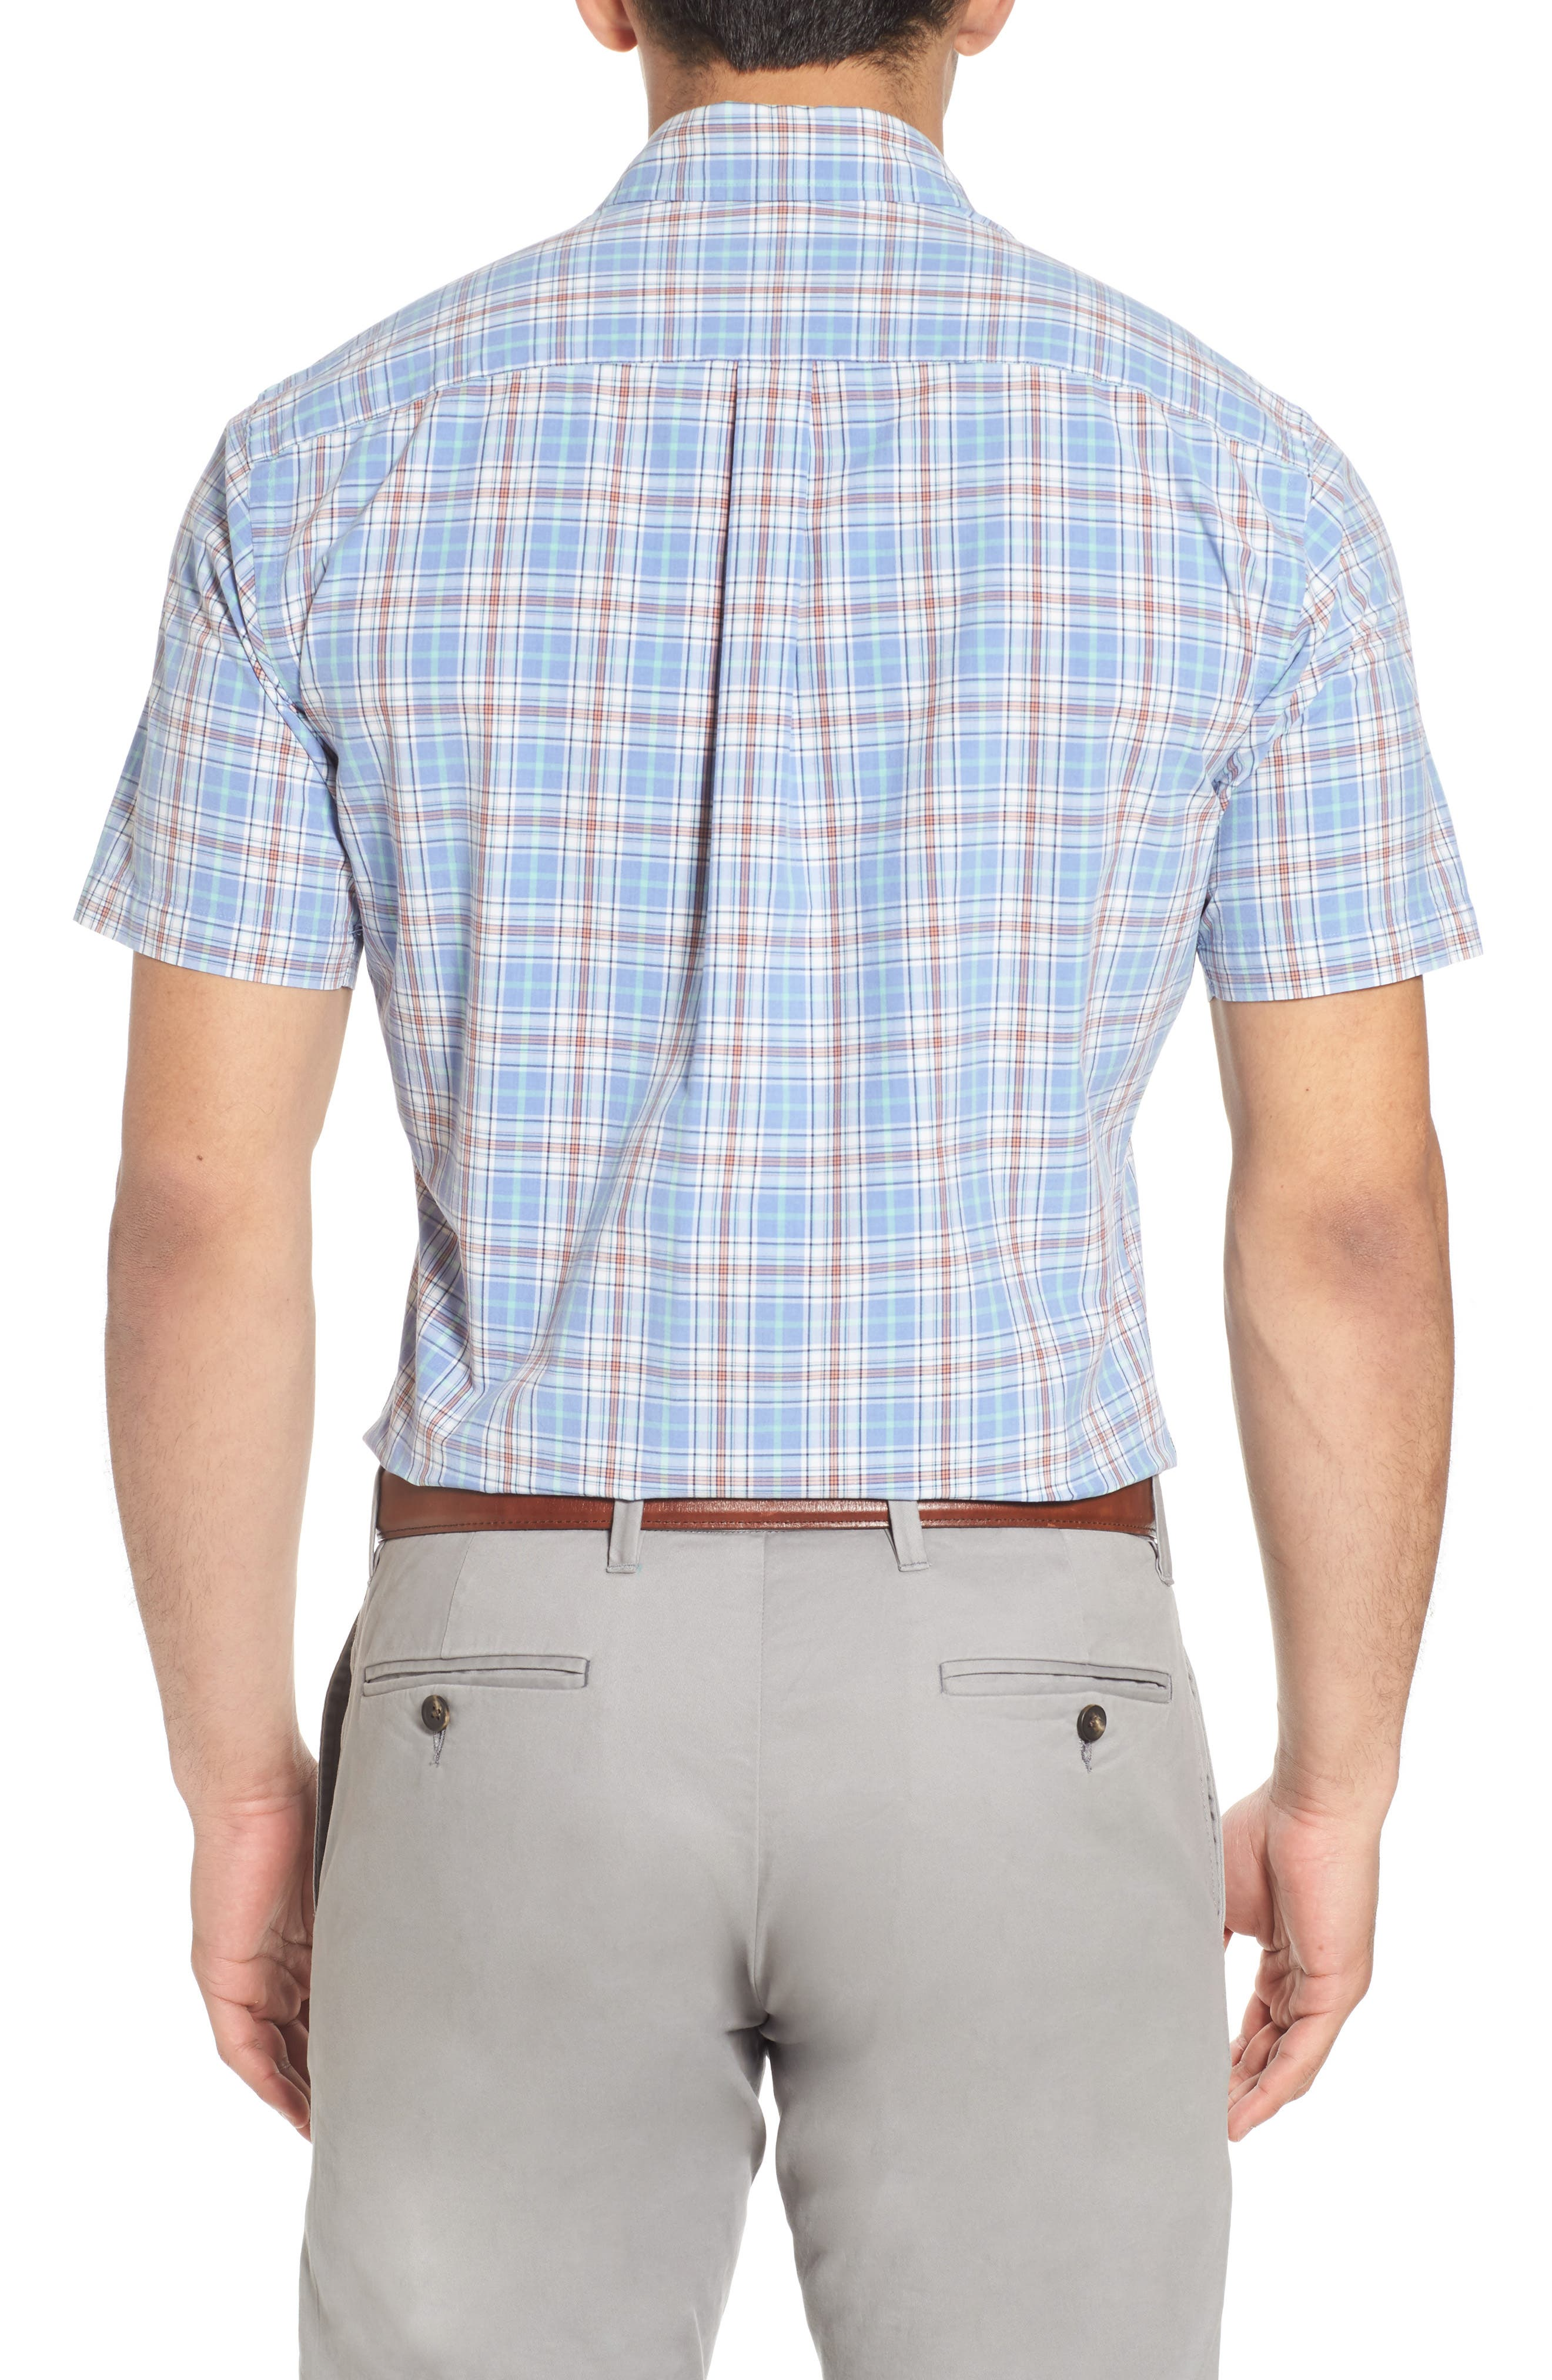 Rockport Plaid Sport Shirt,                             Alternate thumbnail 2, color,                             Bonnet